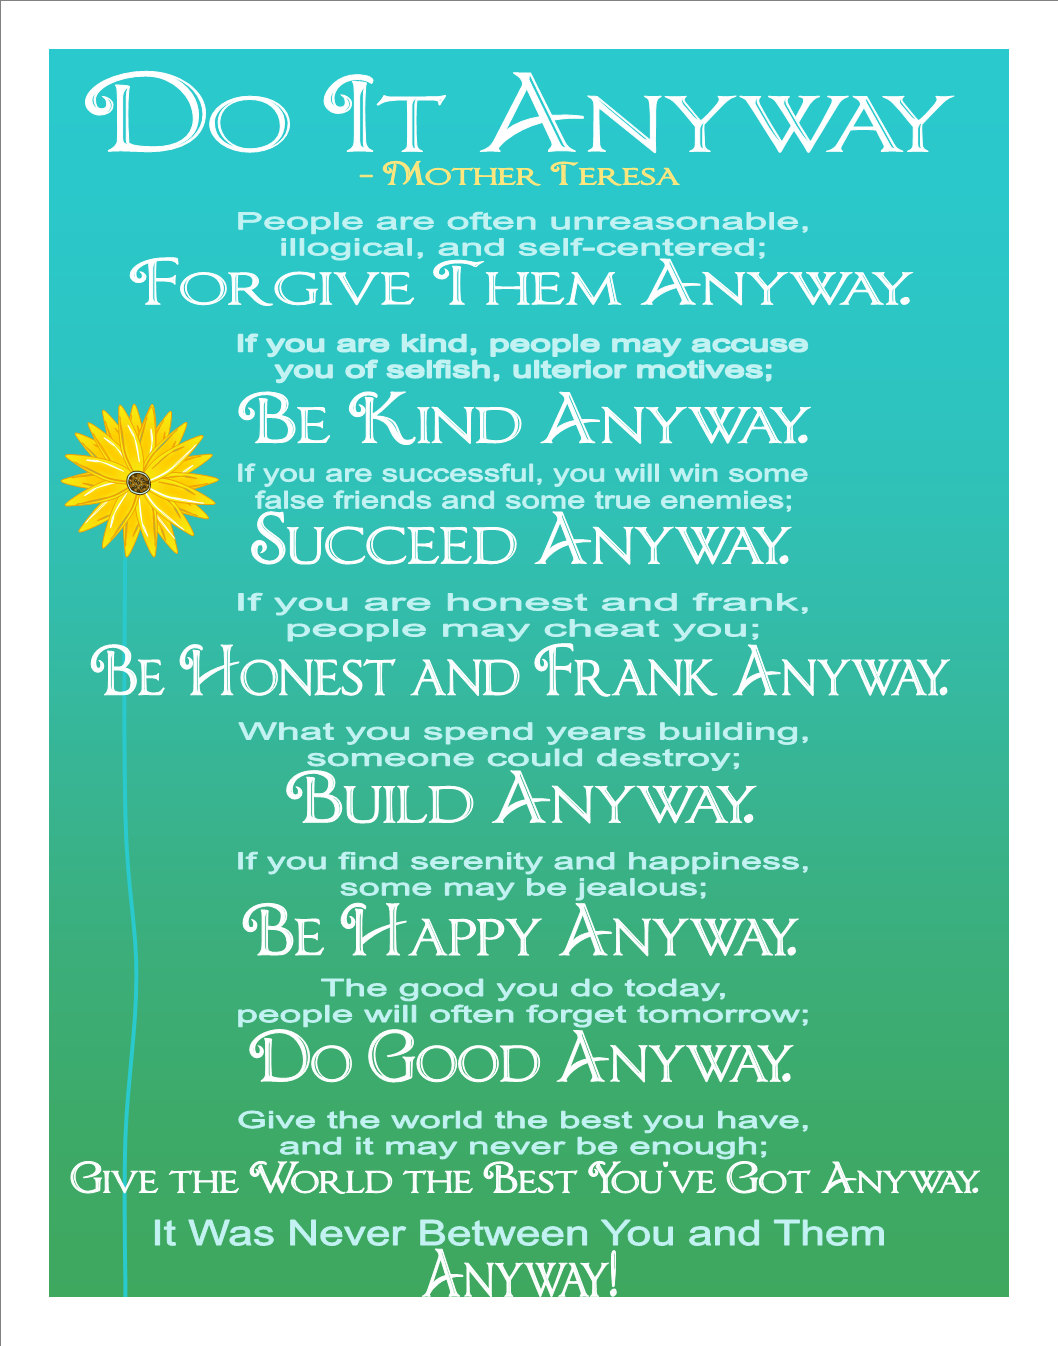 Be kind anyway poem poems motivational and inspirational quotes for the mind the mother teresa thecheapjerseys Gallery